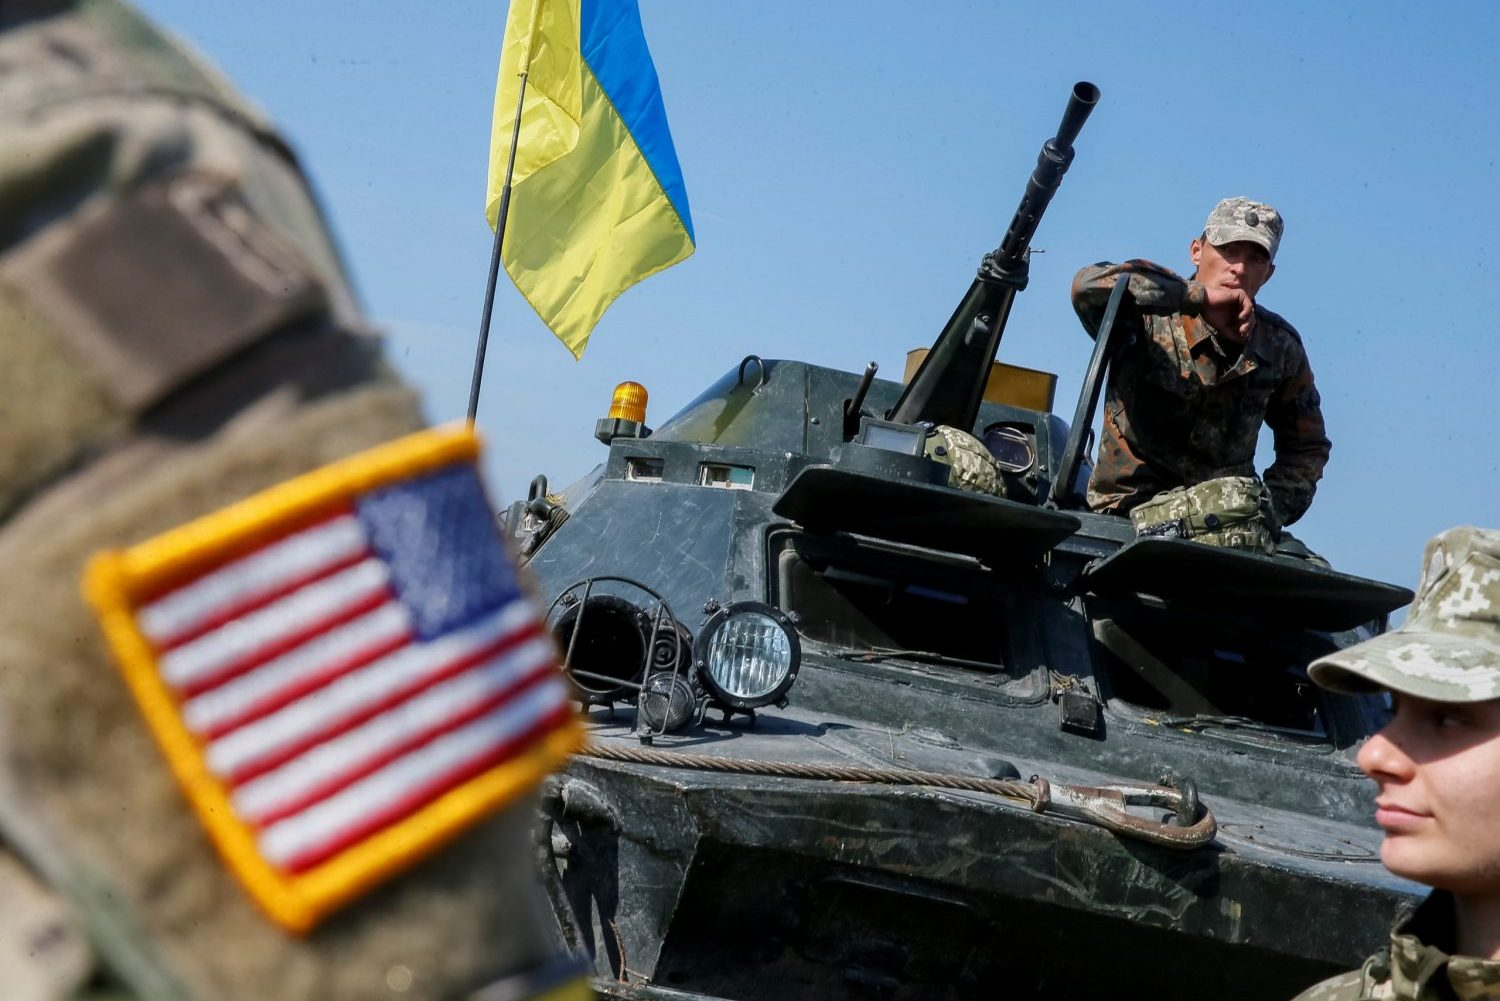 US should grant Ukraine Major Non-NATO Ally status